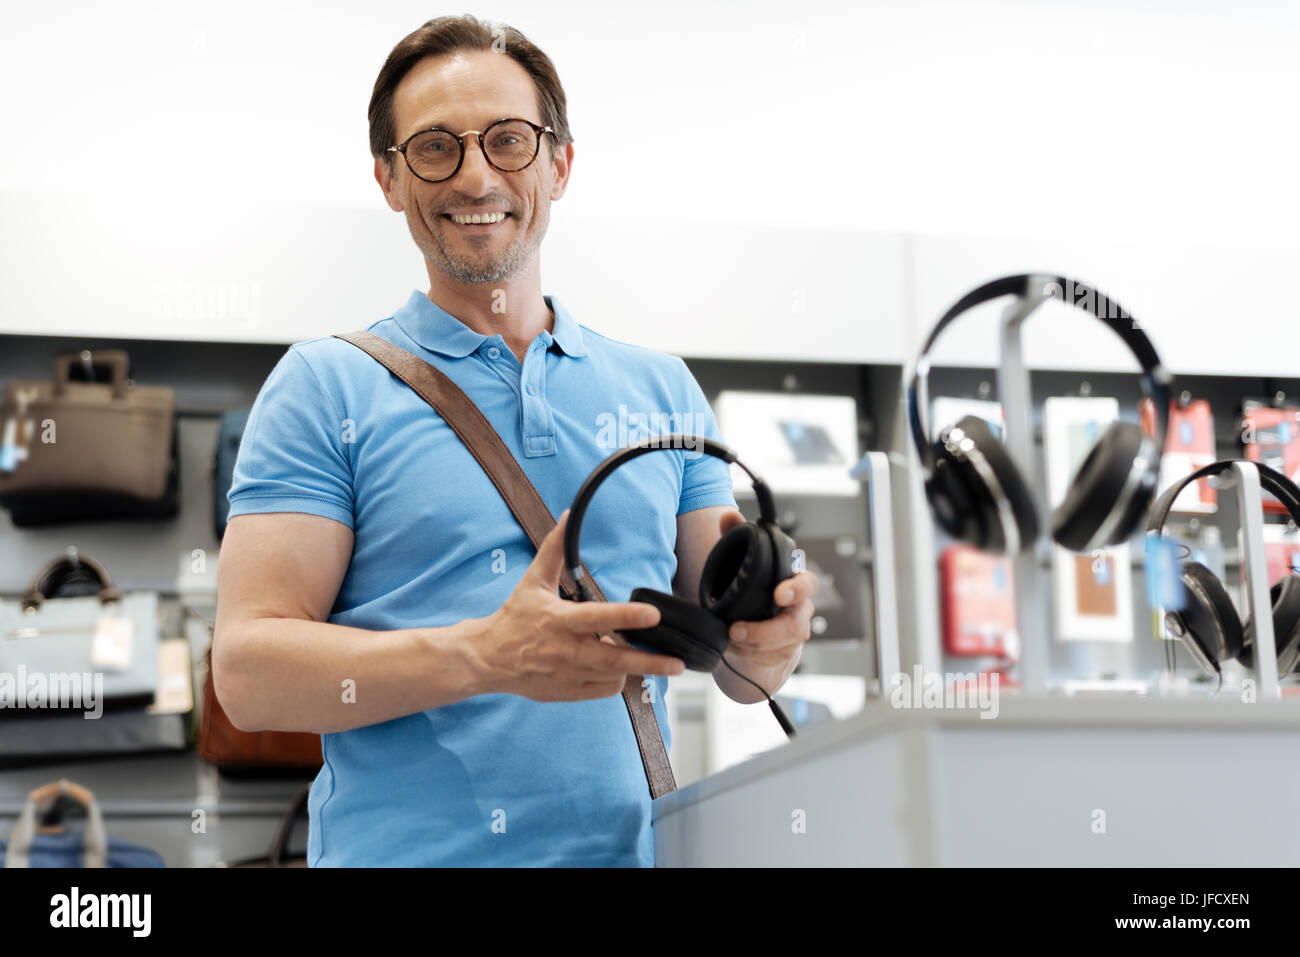 I want to buy them. Shot of a radiant male shopper holding a pair of black headphones while standing at a store - Stock Image